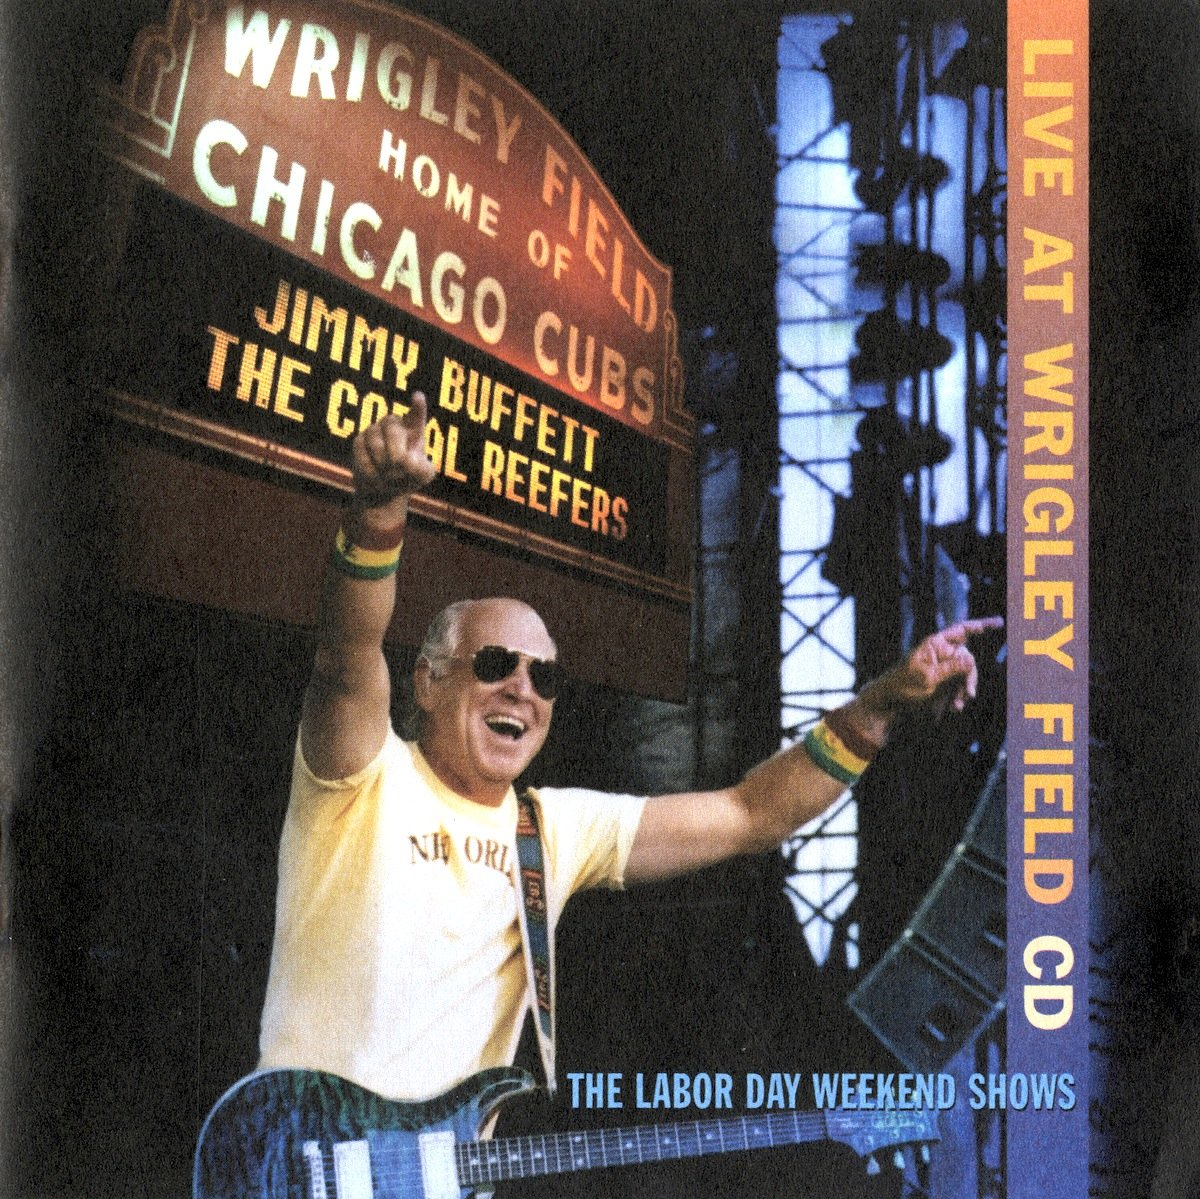 Live at Wrigley Field by Mailboat Records